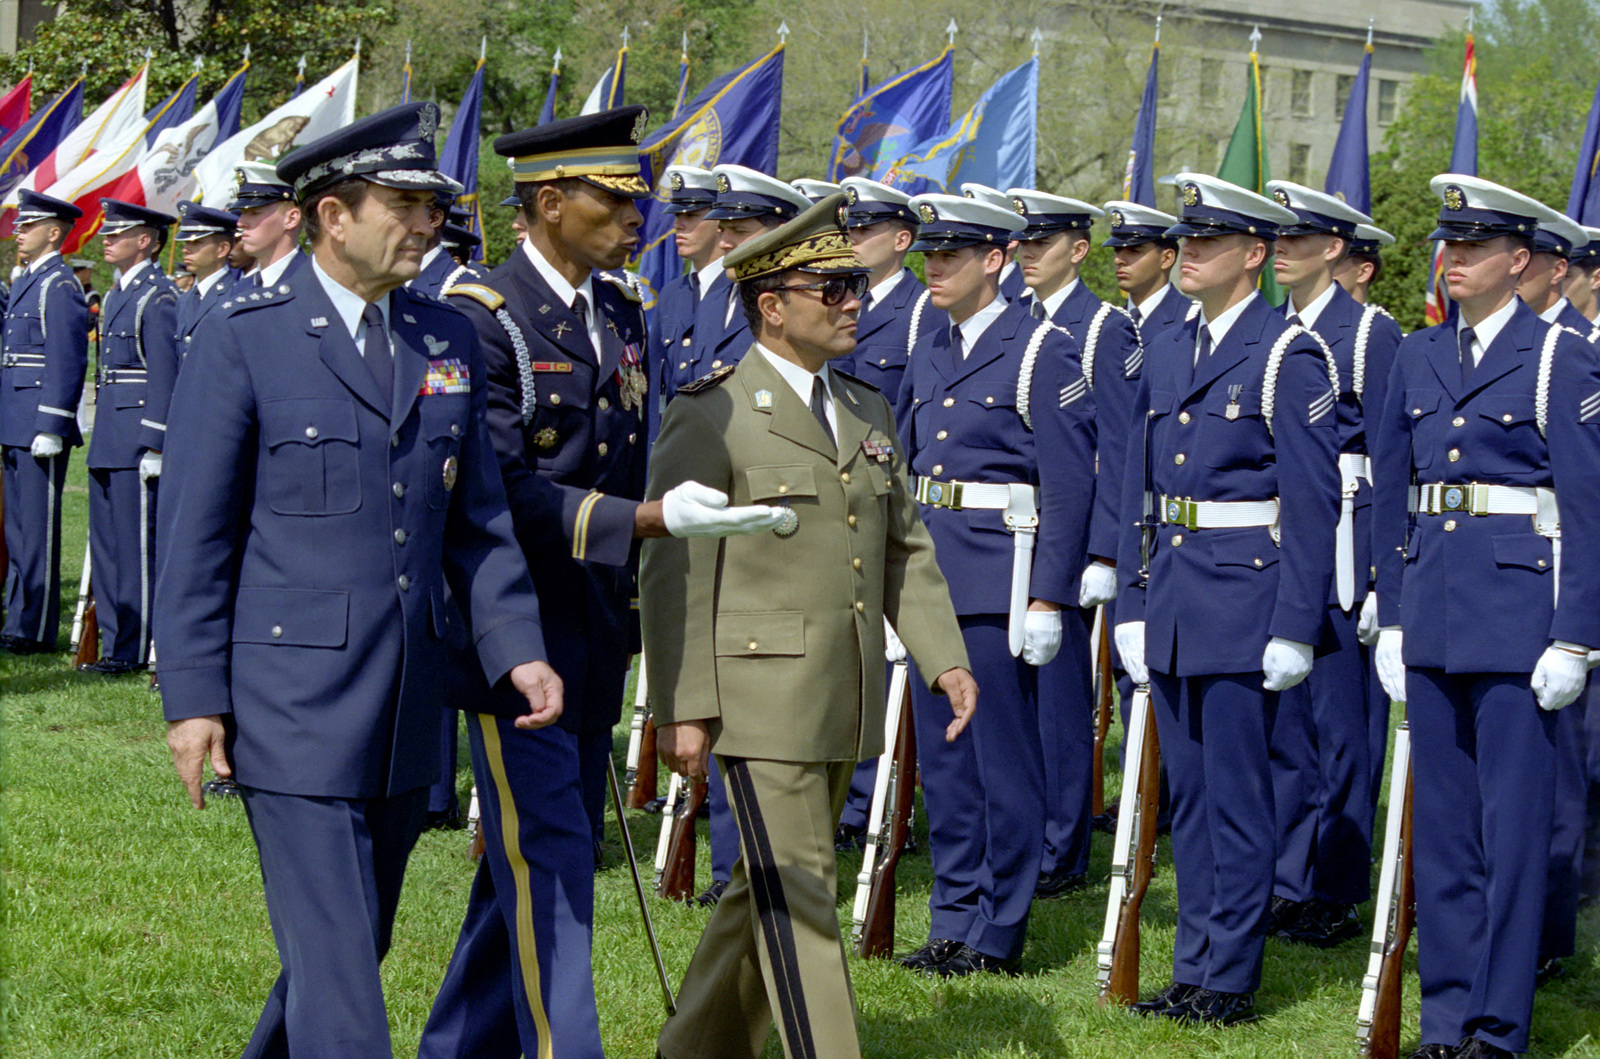 U.S. Air Force GEN. David C. Jones (front left), Chairman of the Joint Chiefs of STAFF and ceremony host, U.S. Army COL. Don Phillips (front center), Commander, 3rd Infantry Division, and Republic of Tunisia Army MAJ. GEN. Abdel Hamid Ben Mohamed Escheikh (front right), CHIEF of STAFF, Tunisian Army, review the troops during the Armed Forces Full Honors Arrival Ceremony for MAJ. GEN. Escheikh, conducted outside the Pentagon on April 20, 1981.  OSD Package No. A07D-00372 (DOD PHOTO by Robert D. Ward) (Released)